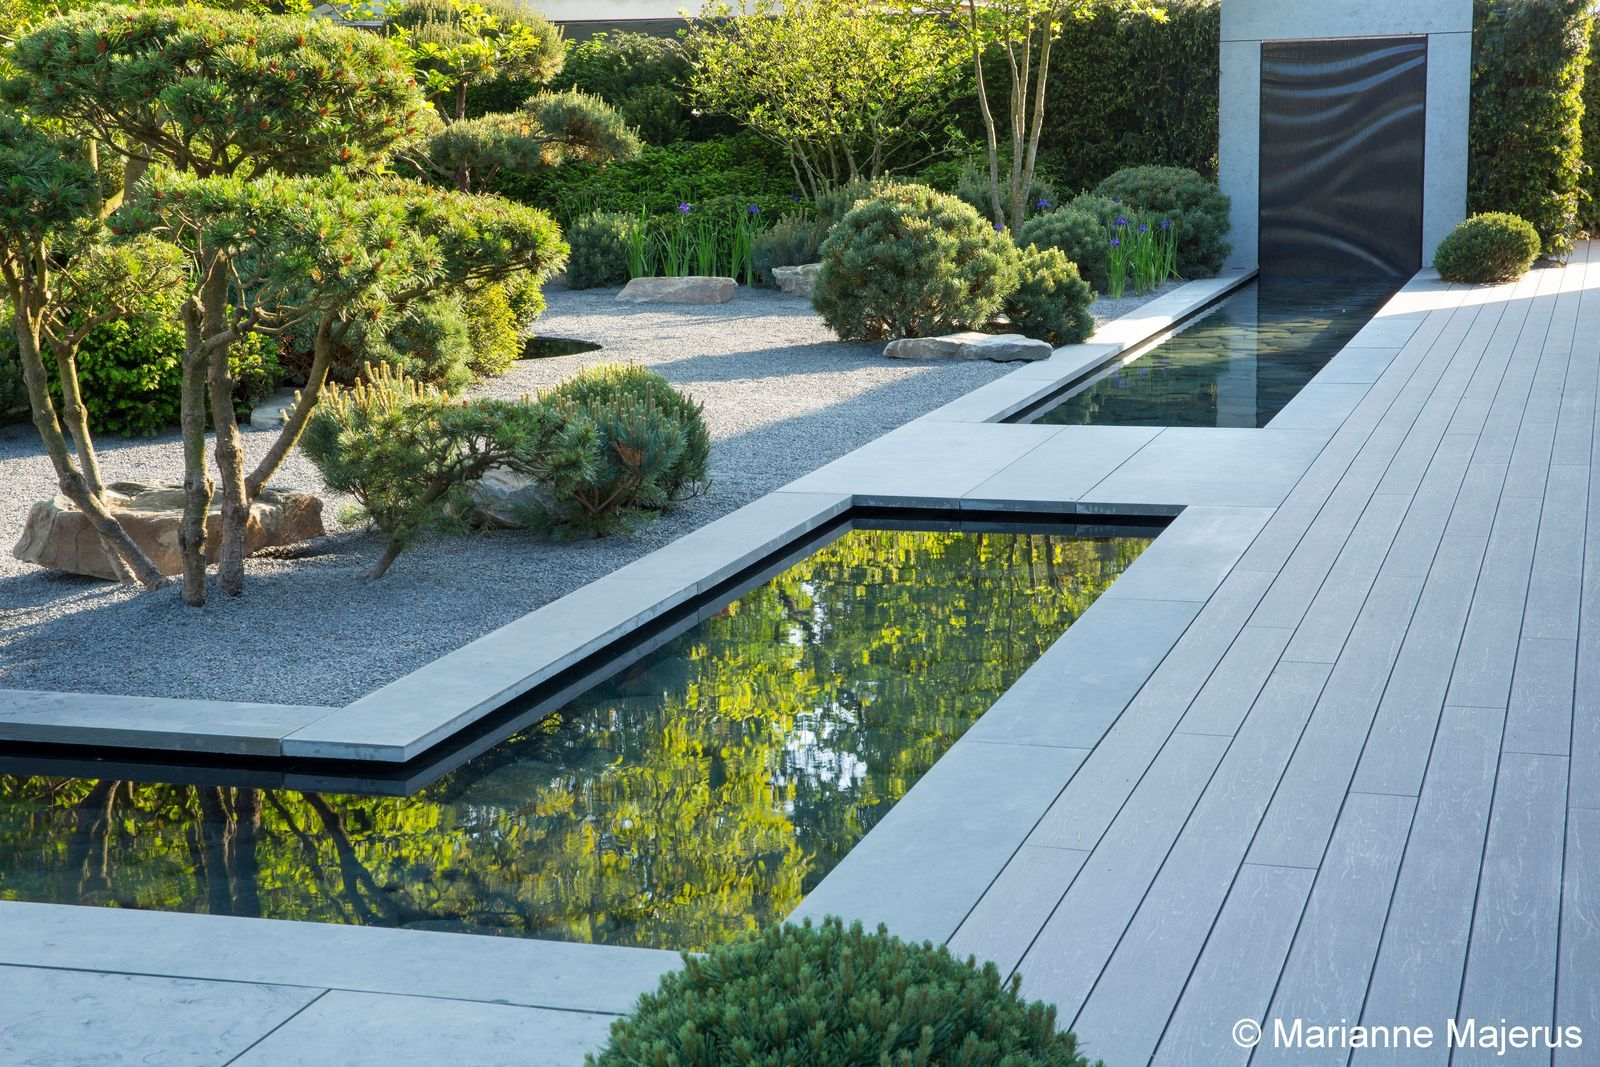 The Best Garden Designs And Landscapes Have Been Celebrated At The Sgd Awards Contemporary Garden Design Modern Landscaping Modern Garden Design